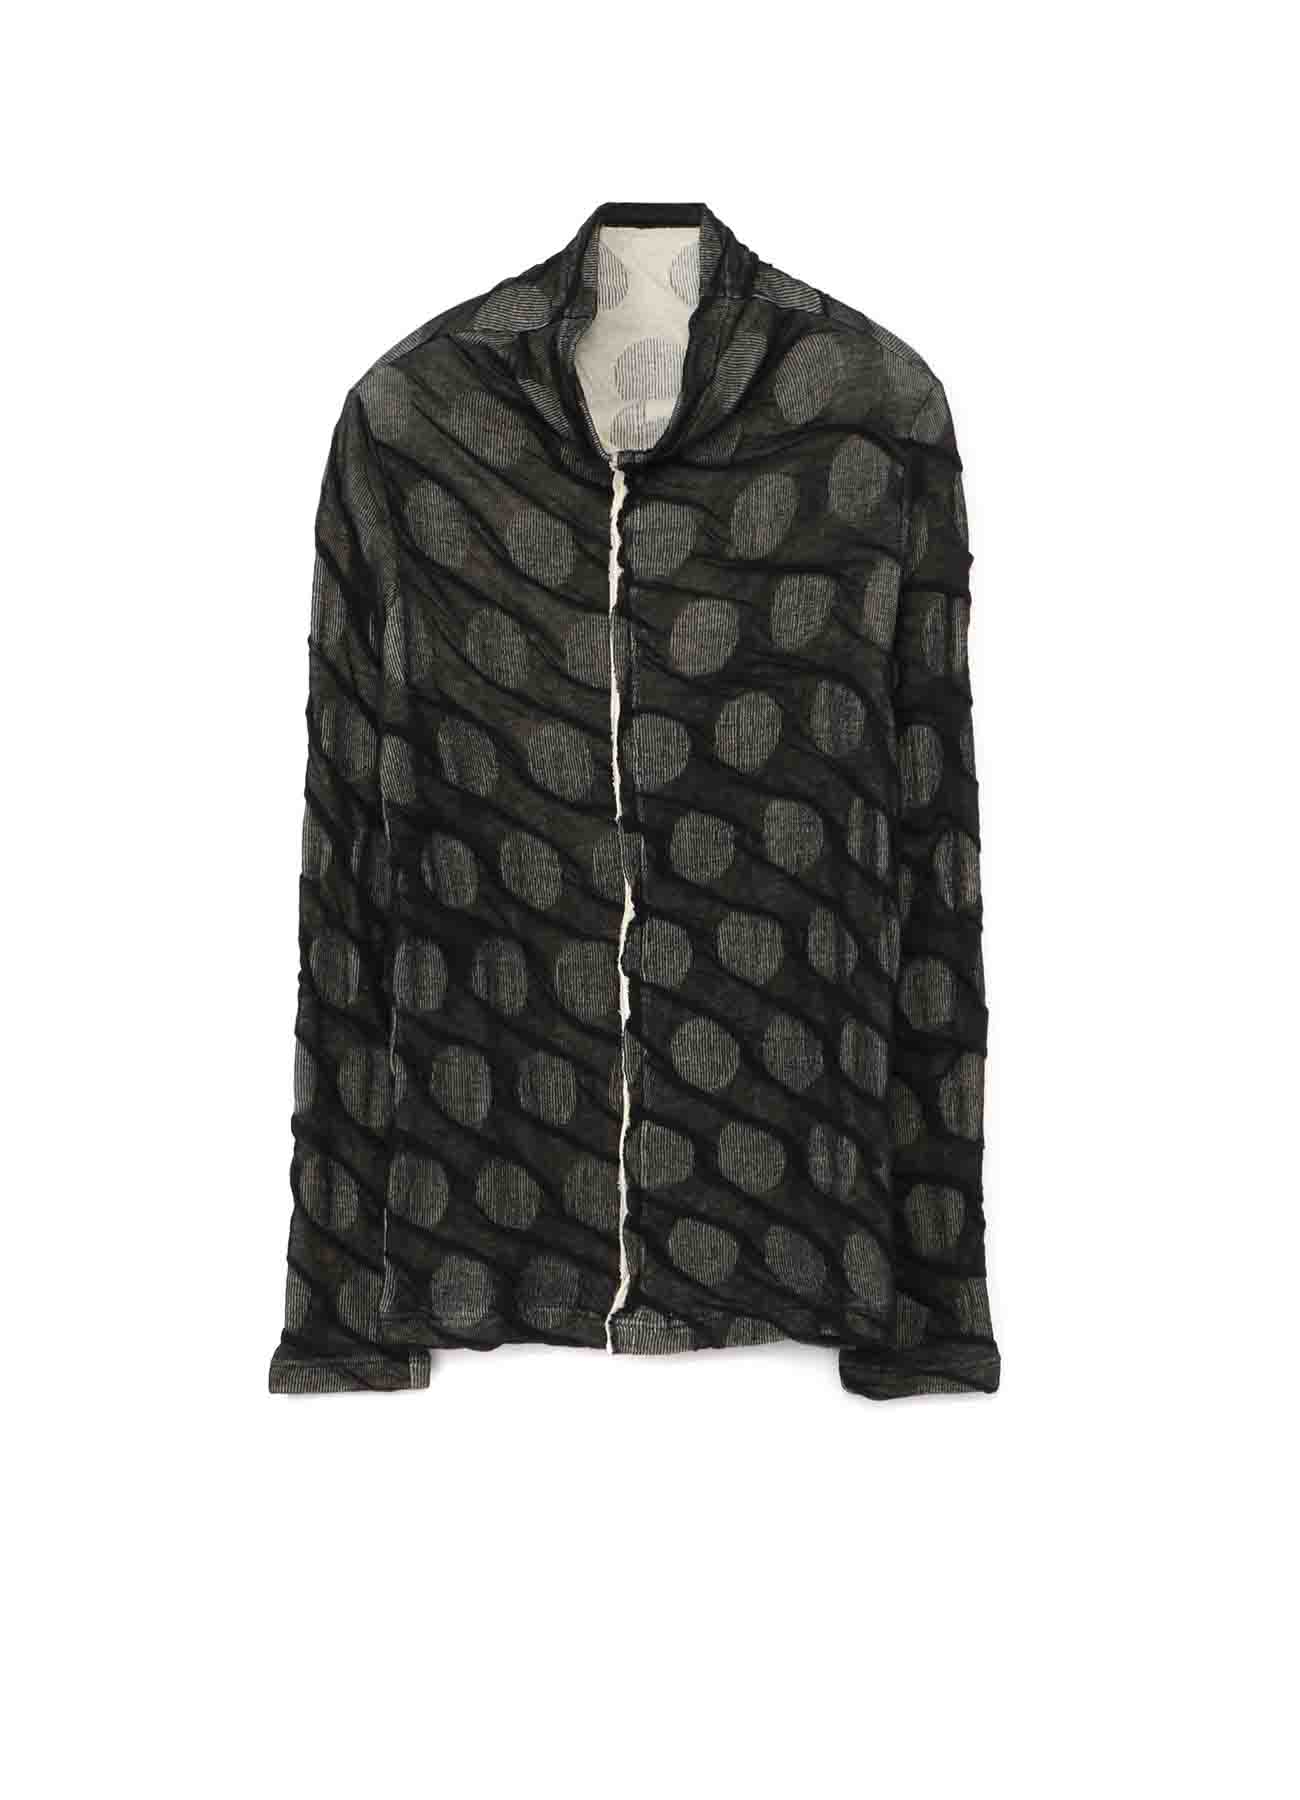 DOT DUAL-LAYER FRONT PANEL HIGHT NECK LONG SLEEVE T